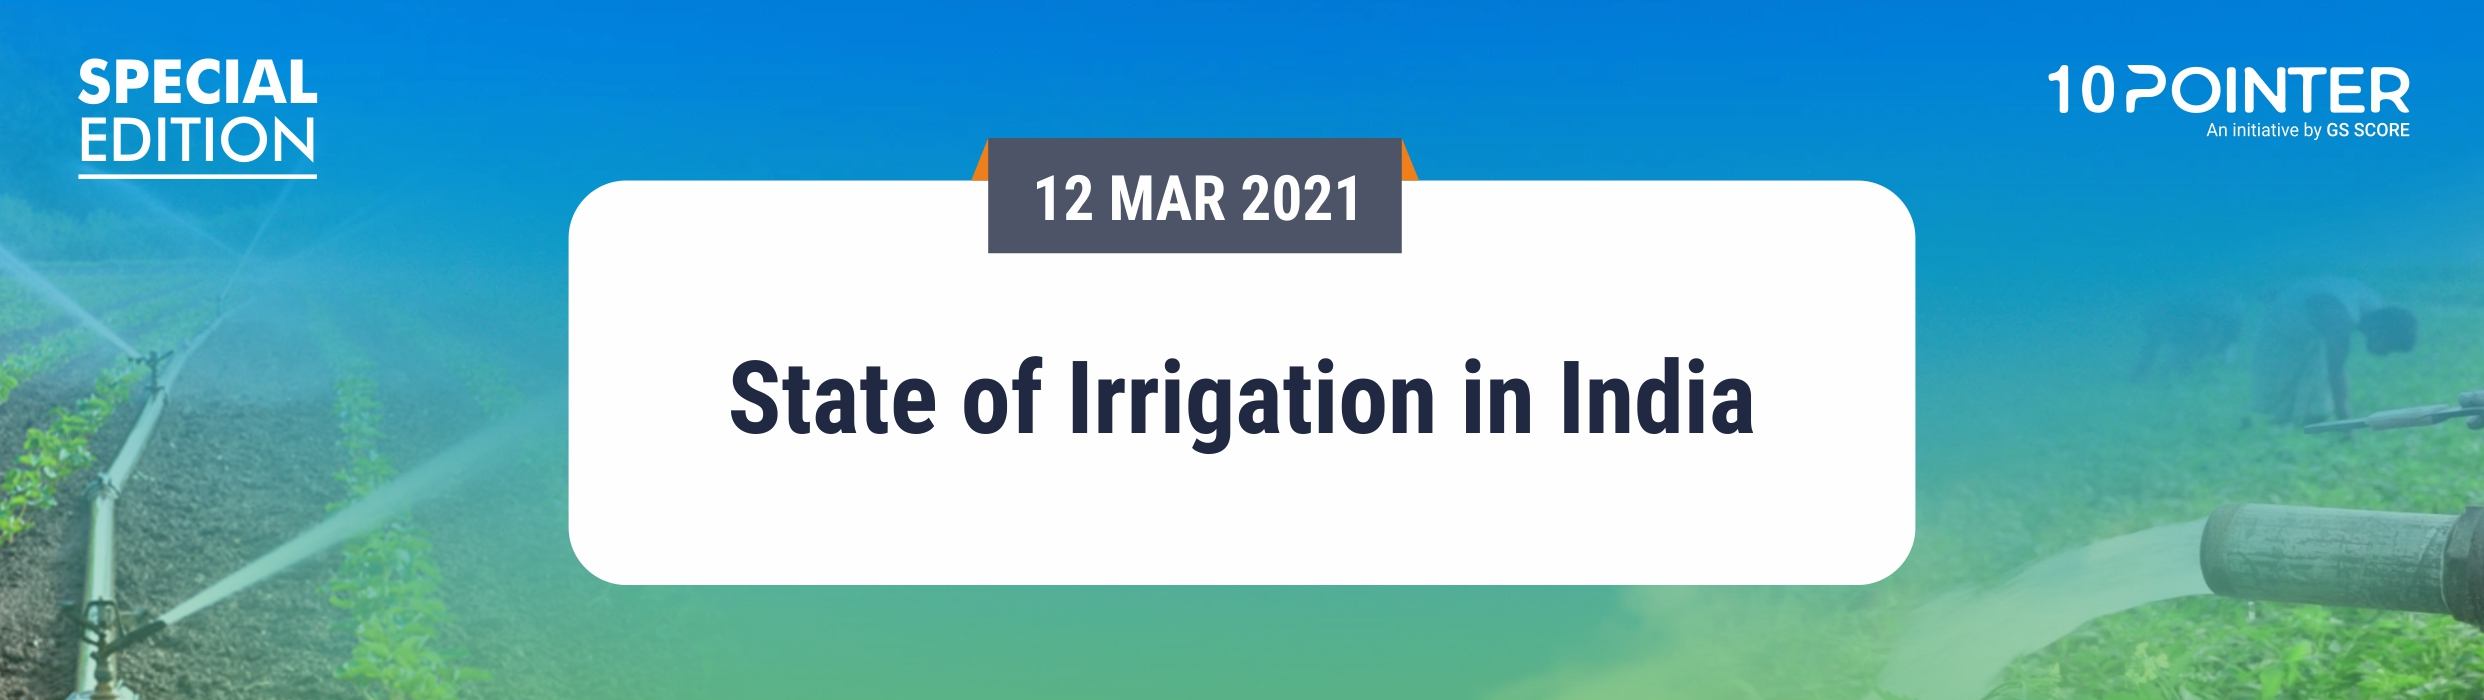 State of Irrigation in India